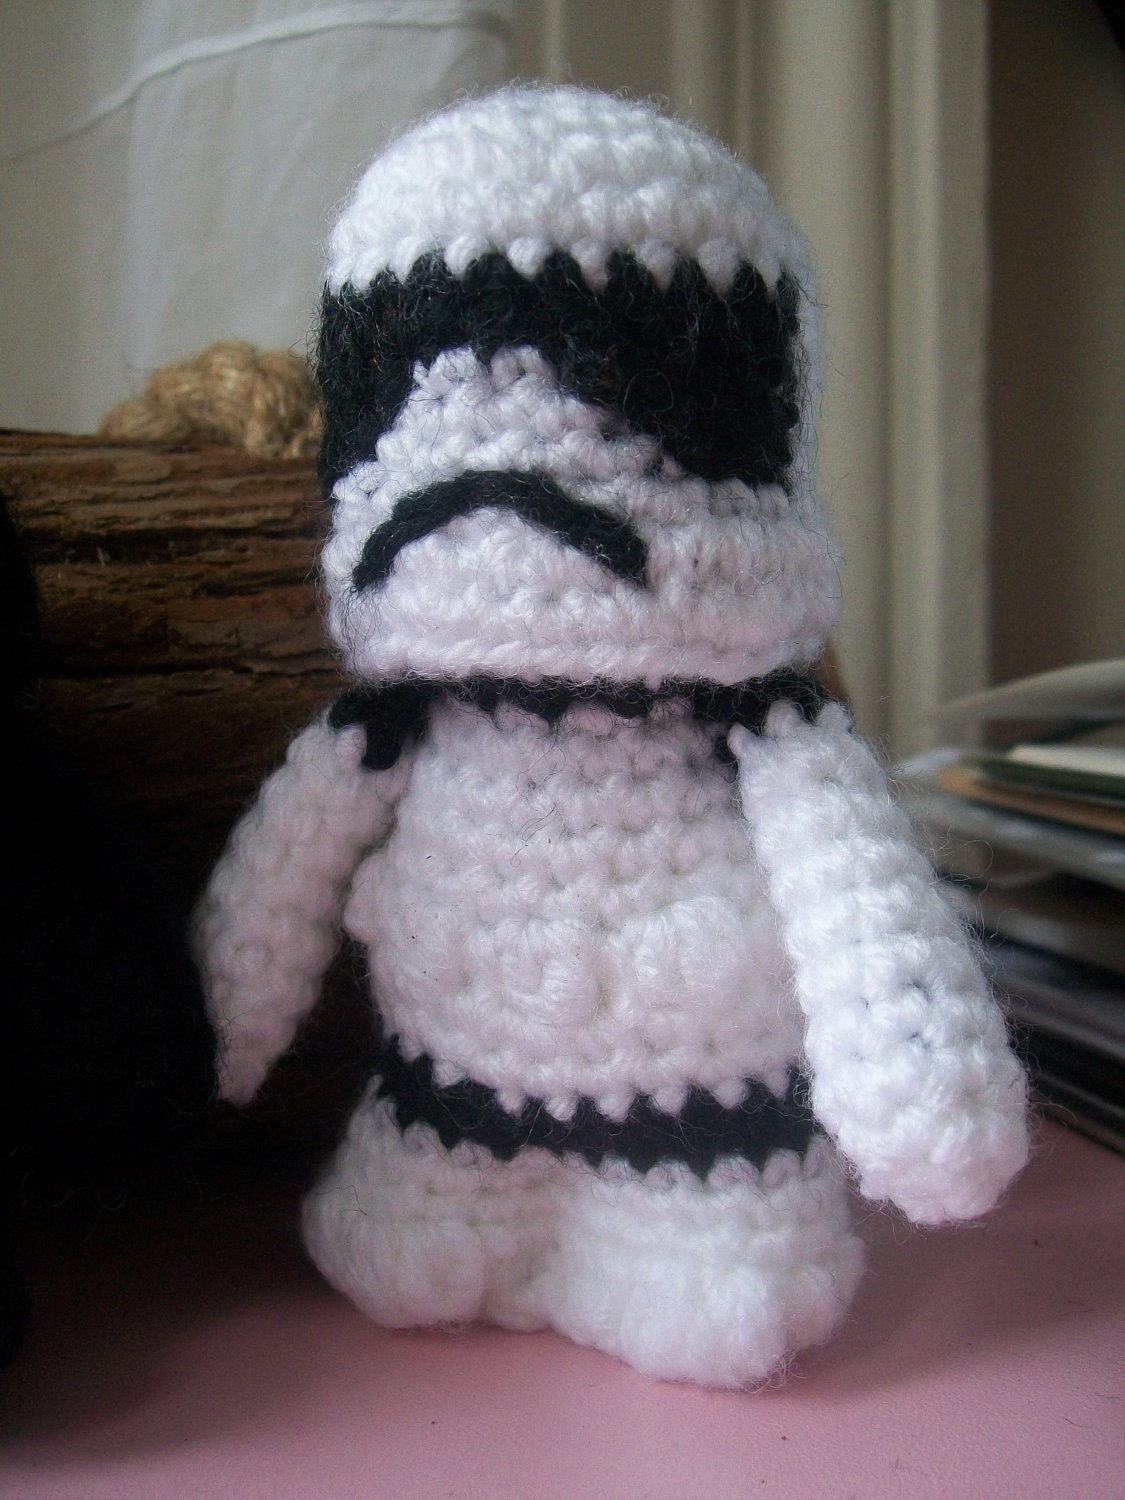 Crochet Patterns Star Wars : Stormtrooper Pattern Star Wars Amigurumi by SnorkersImaginarium